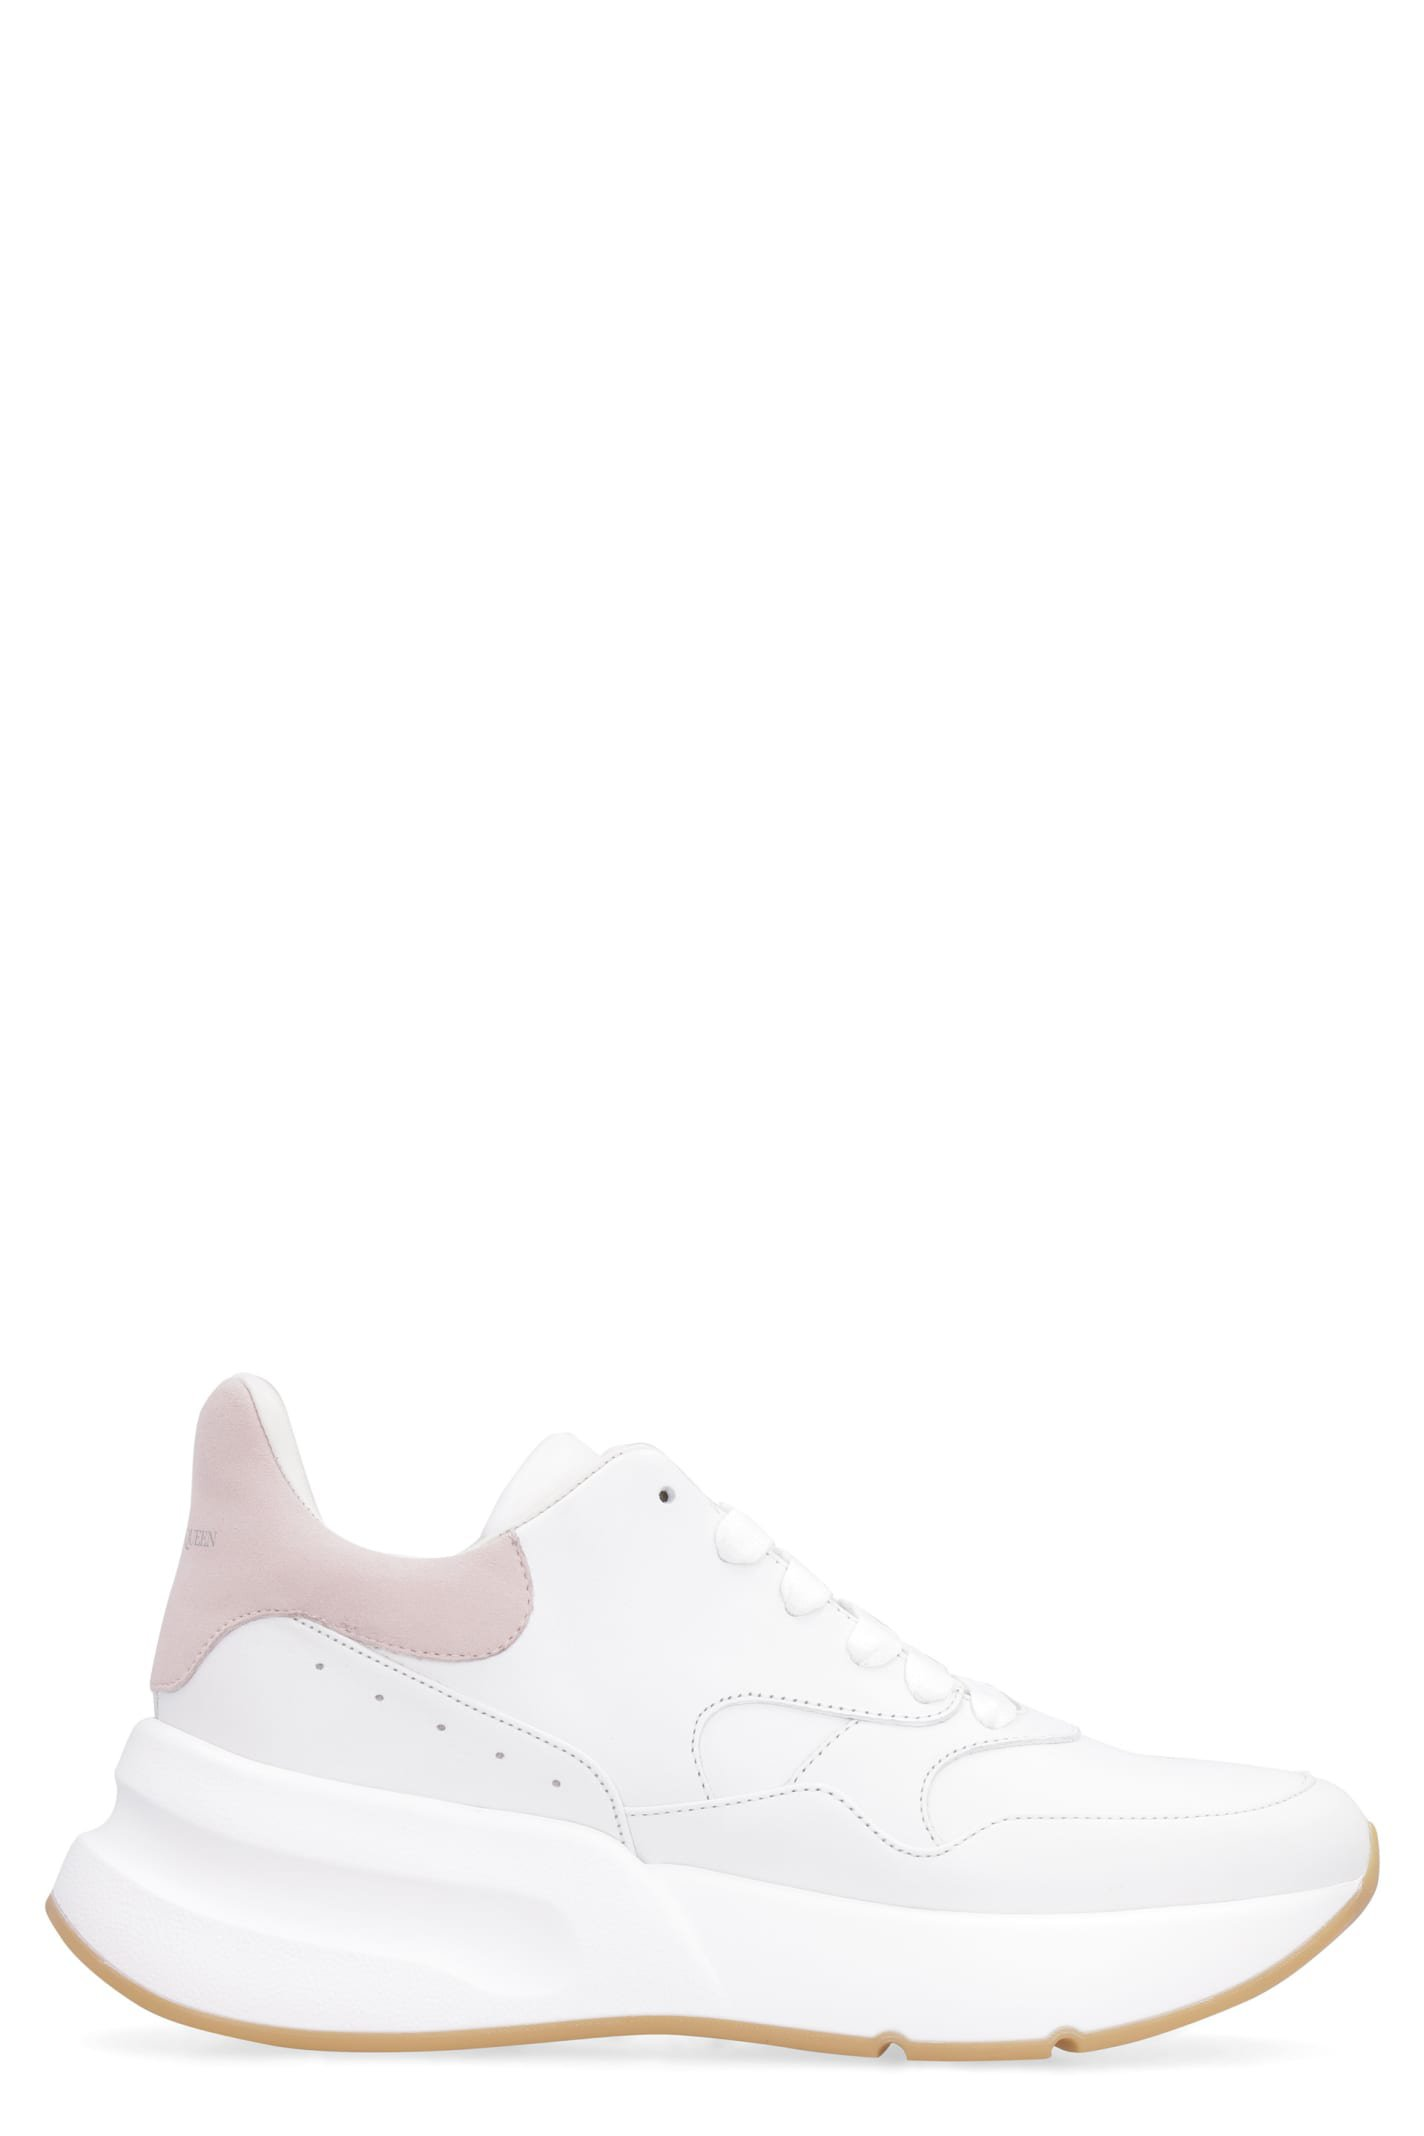 Alexander McQueen Leather Chunky Sneakers